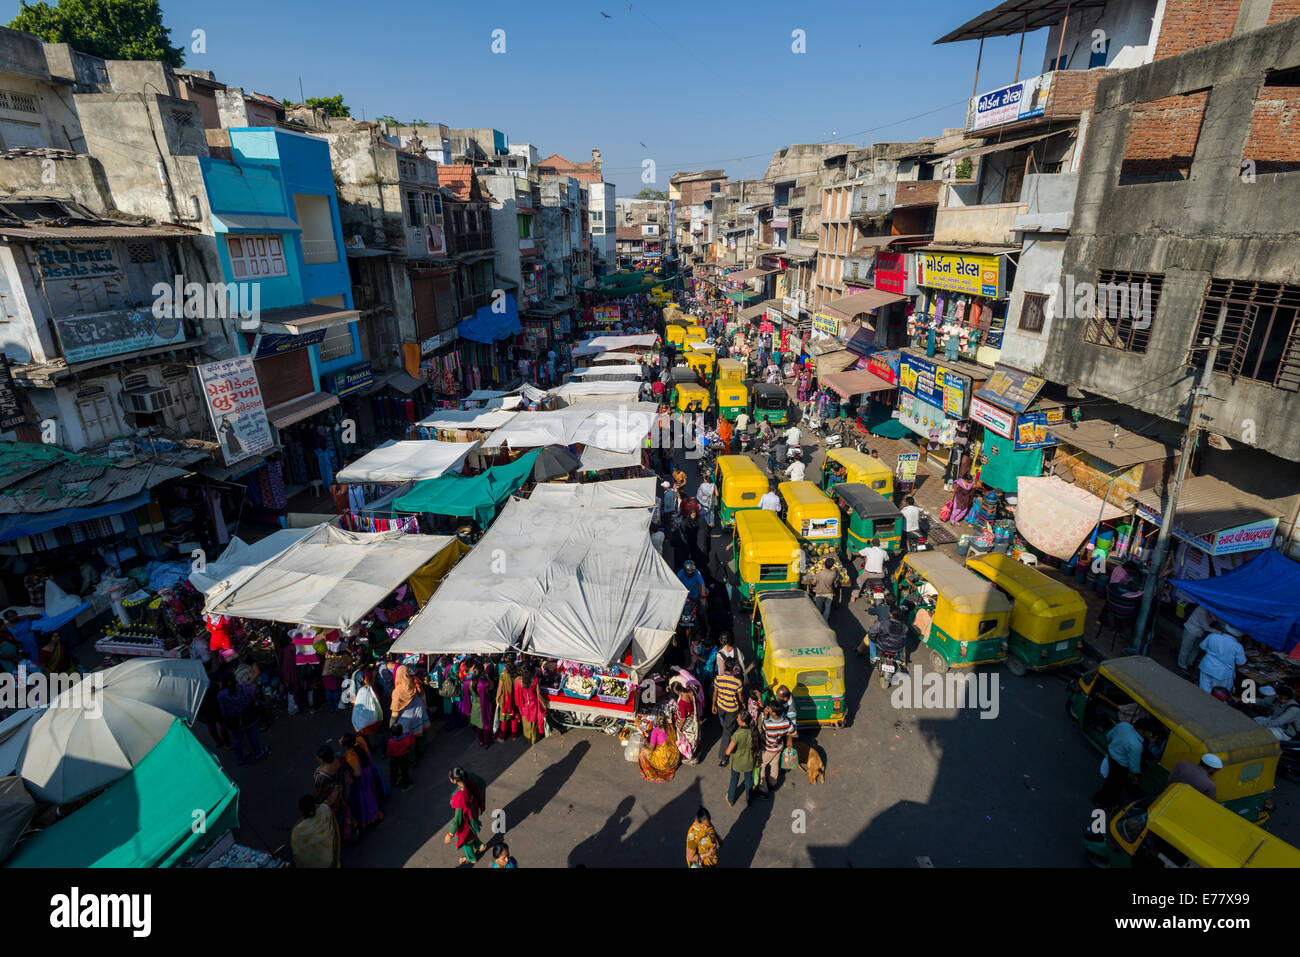 A crowded street with shops and traffic jam in the old city market area, Ahmedabad, Gujarat, India - Stock Image